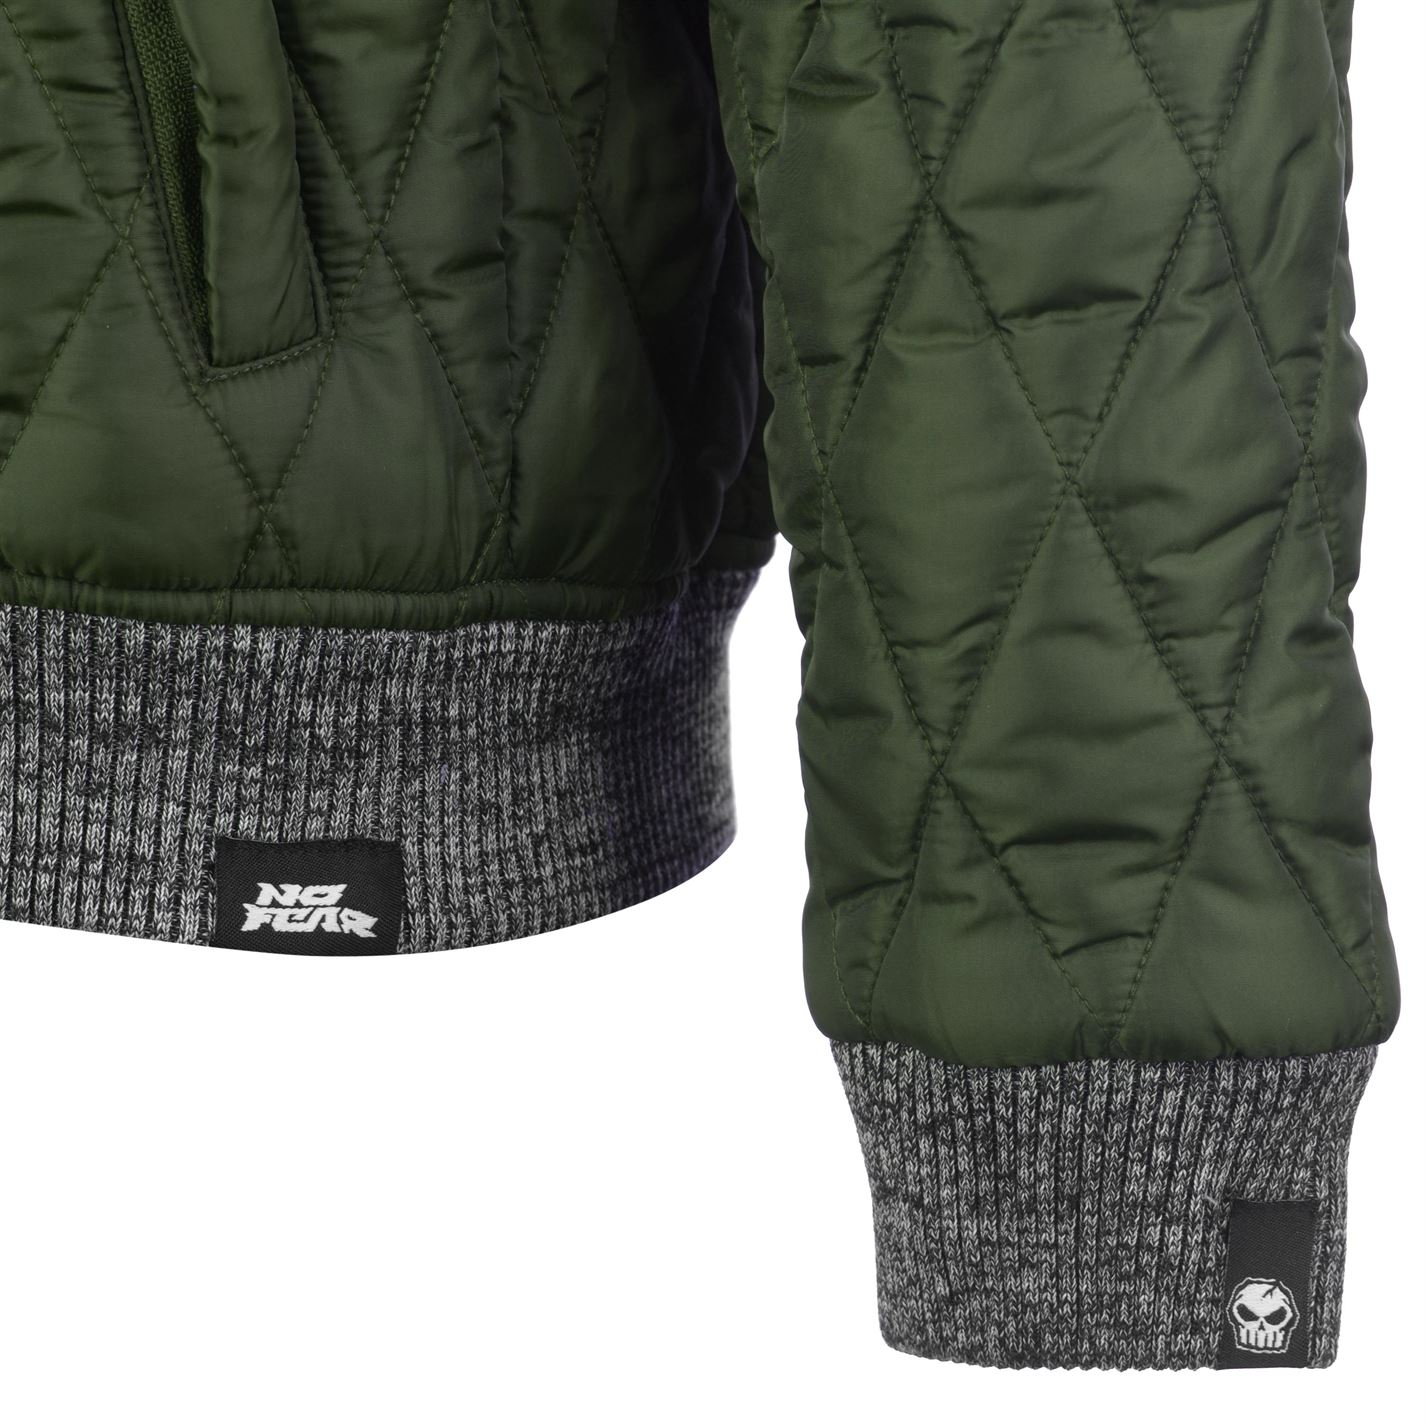 No-Fear-Quilted-Bomber-Jacket-Mens-Gents-Coat-Top-Full-Length-Sleeve-Zip-Zipped thumbnail 16